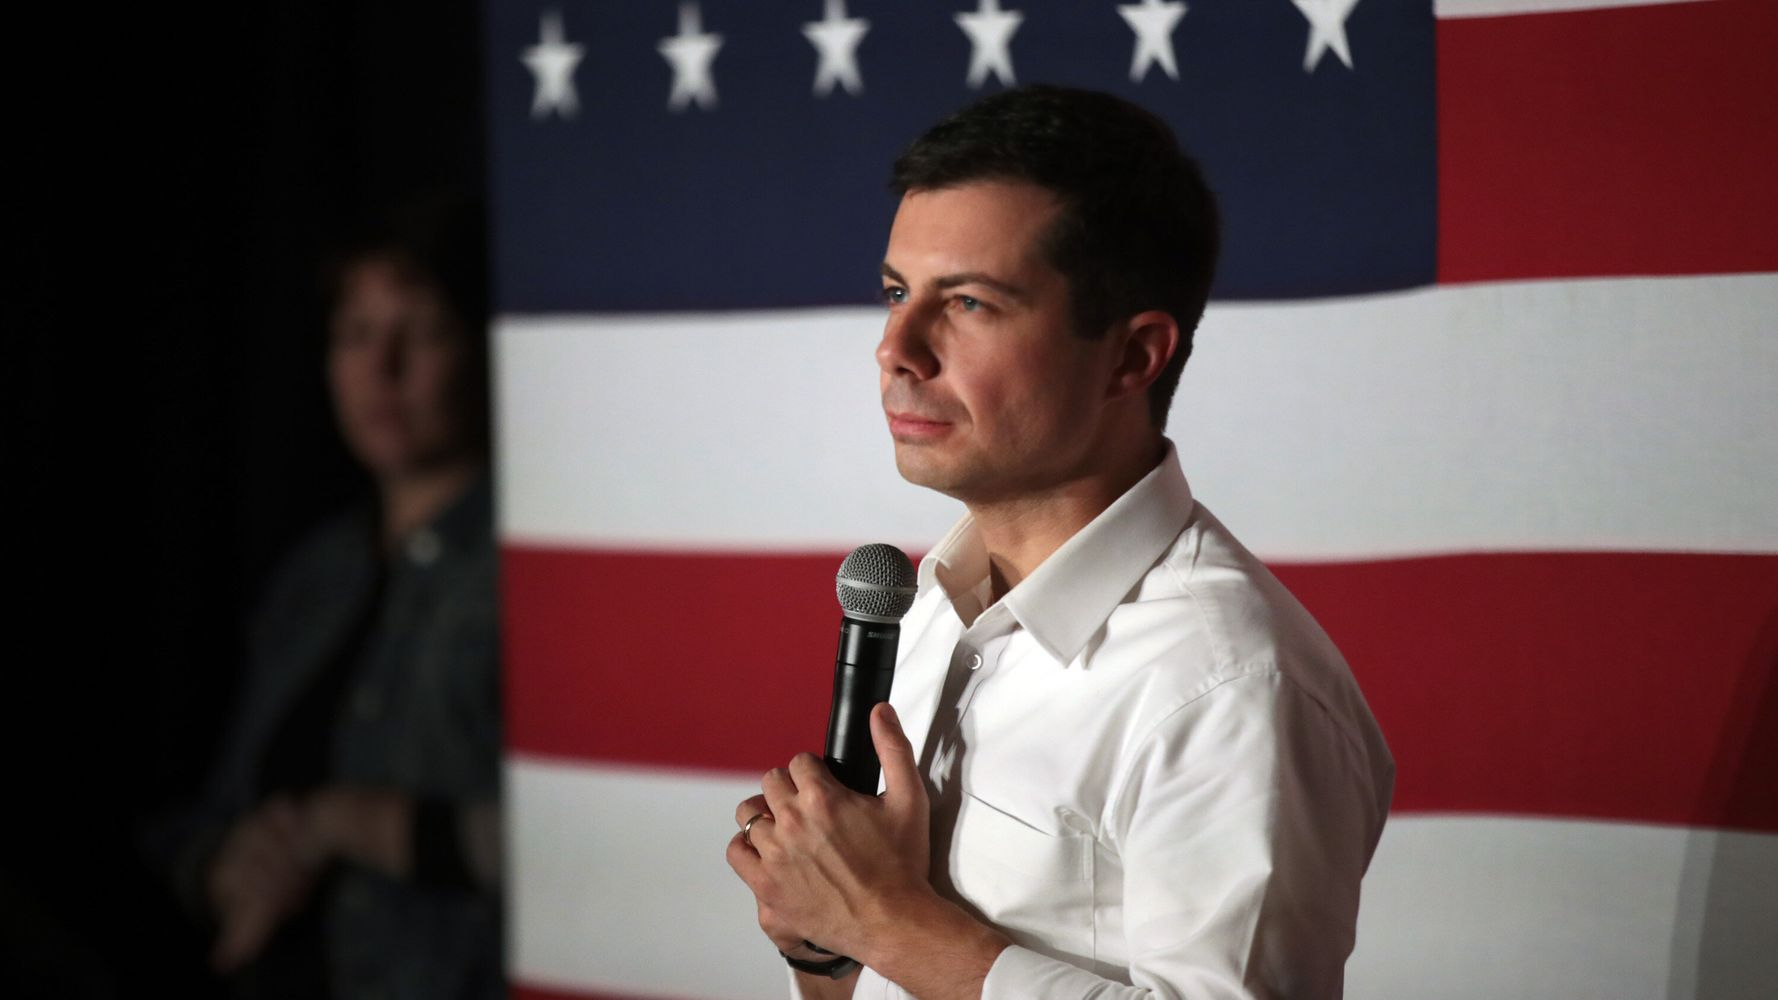 Obama Reading List 2020.Pete Buttigieg Pitches Himself As The Obama Of 2020 Huffpost